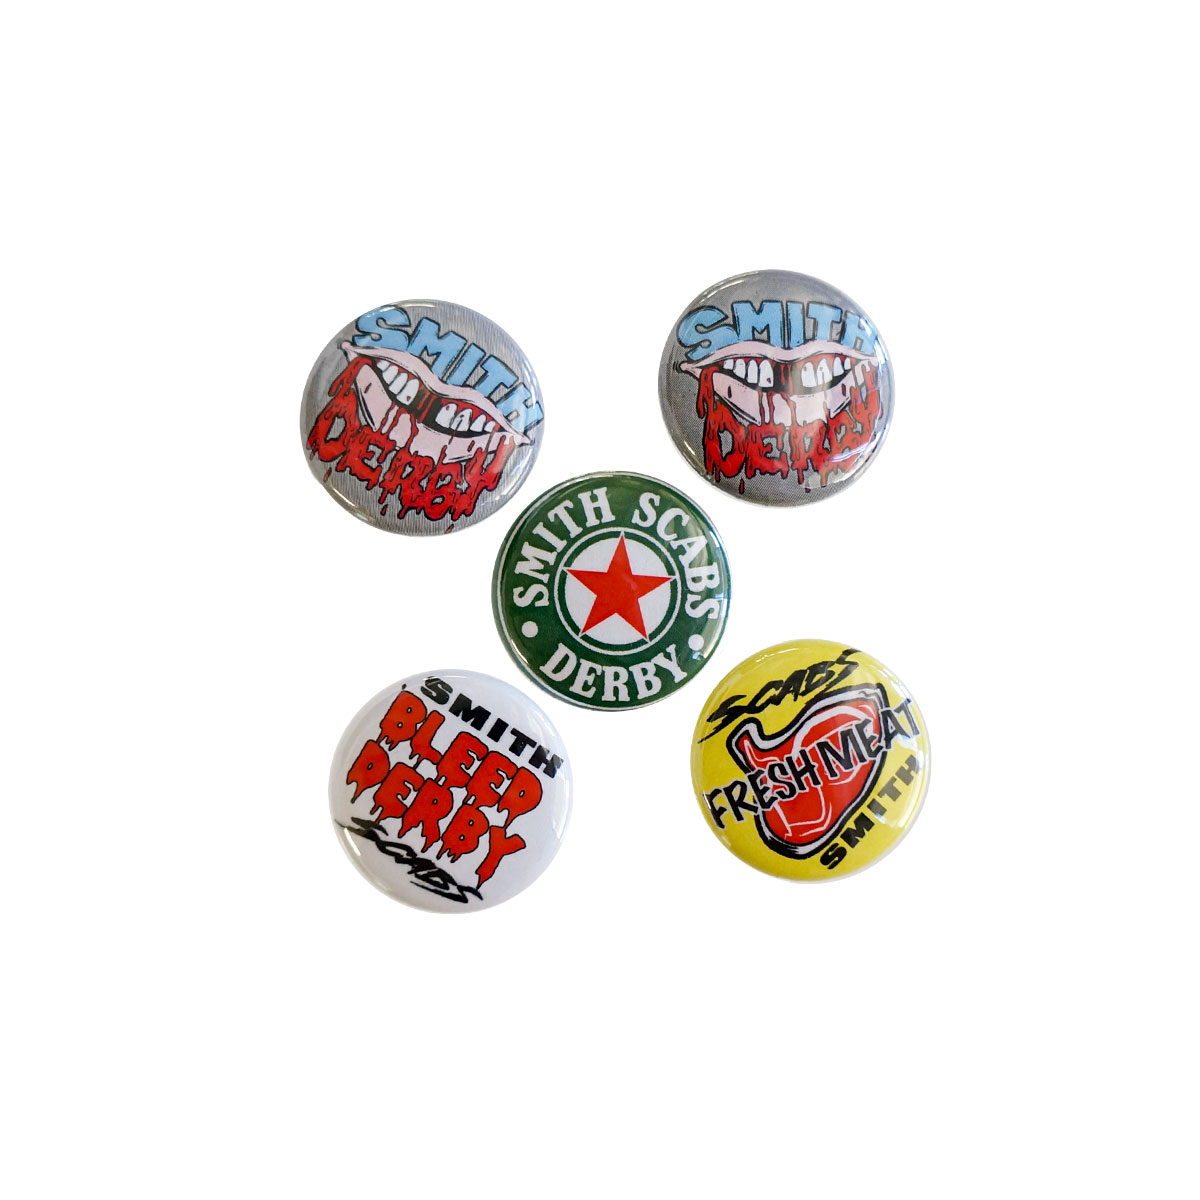 "1"" Derby Buttons 5 Pack"